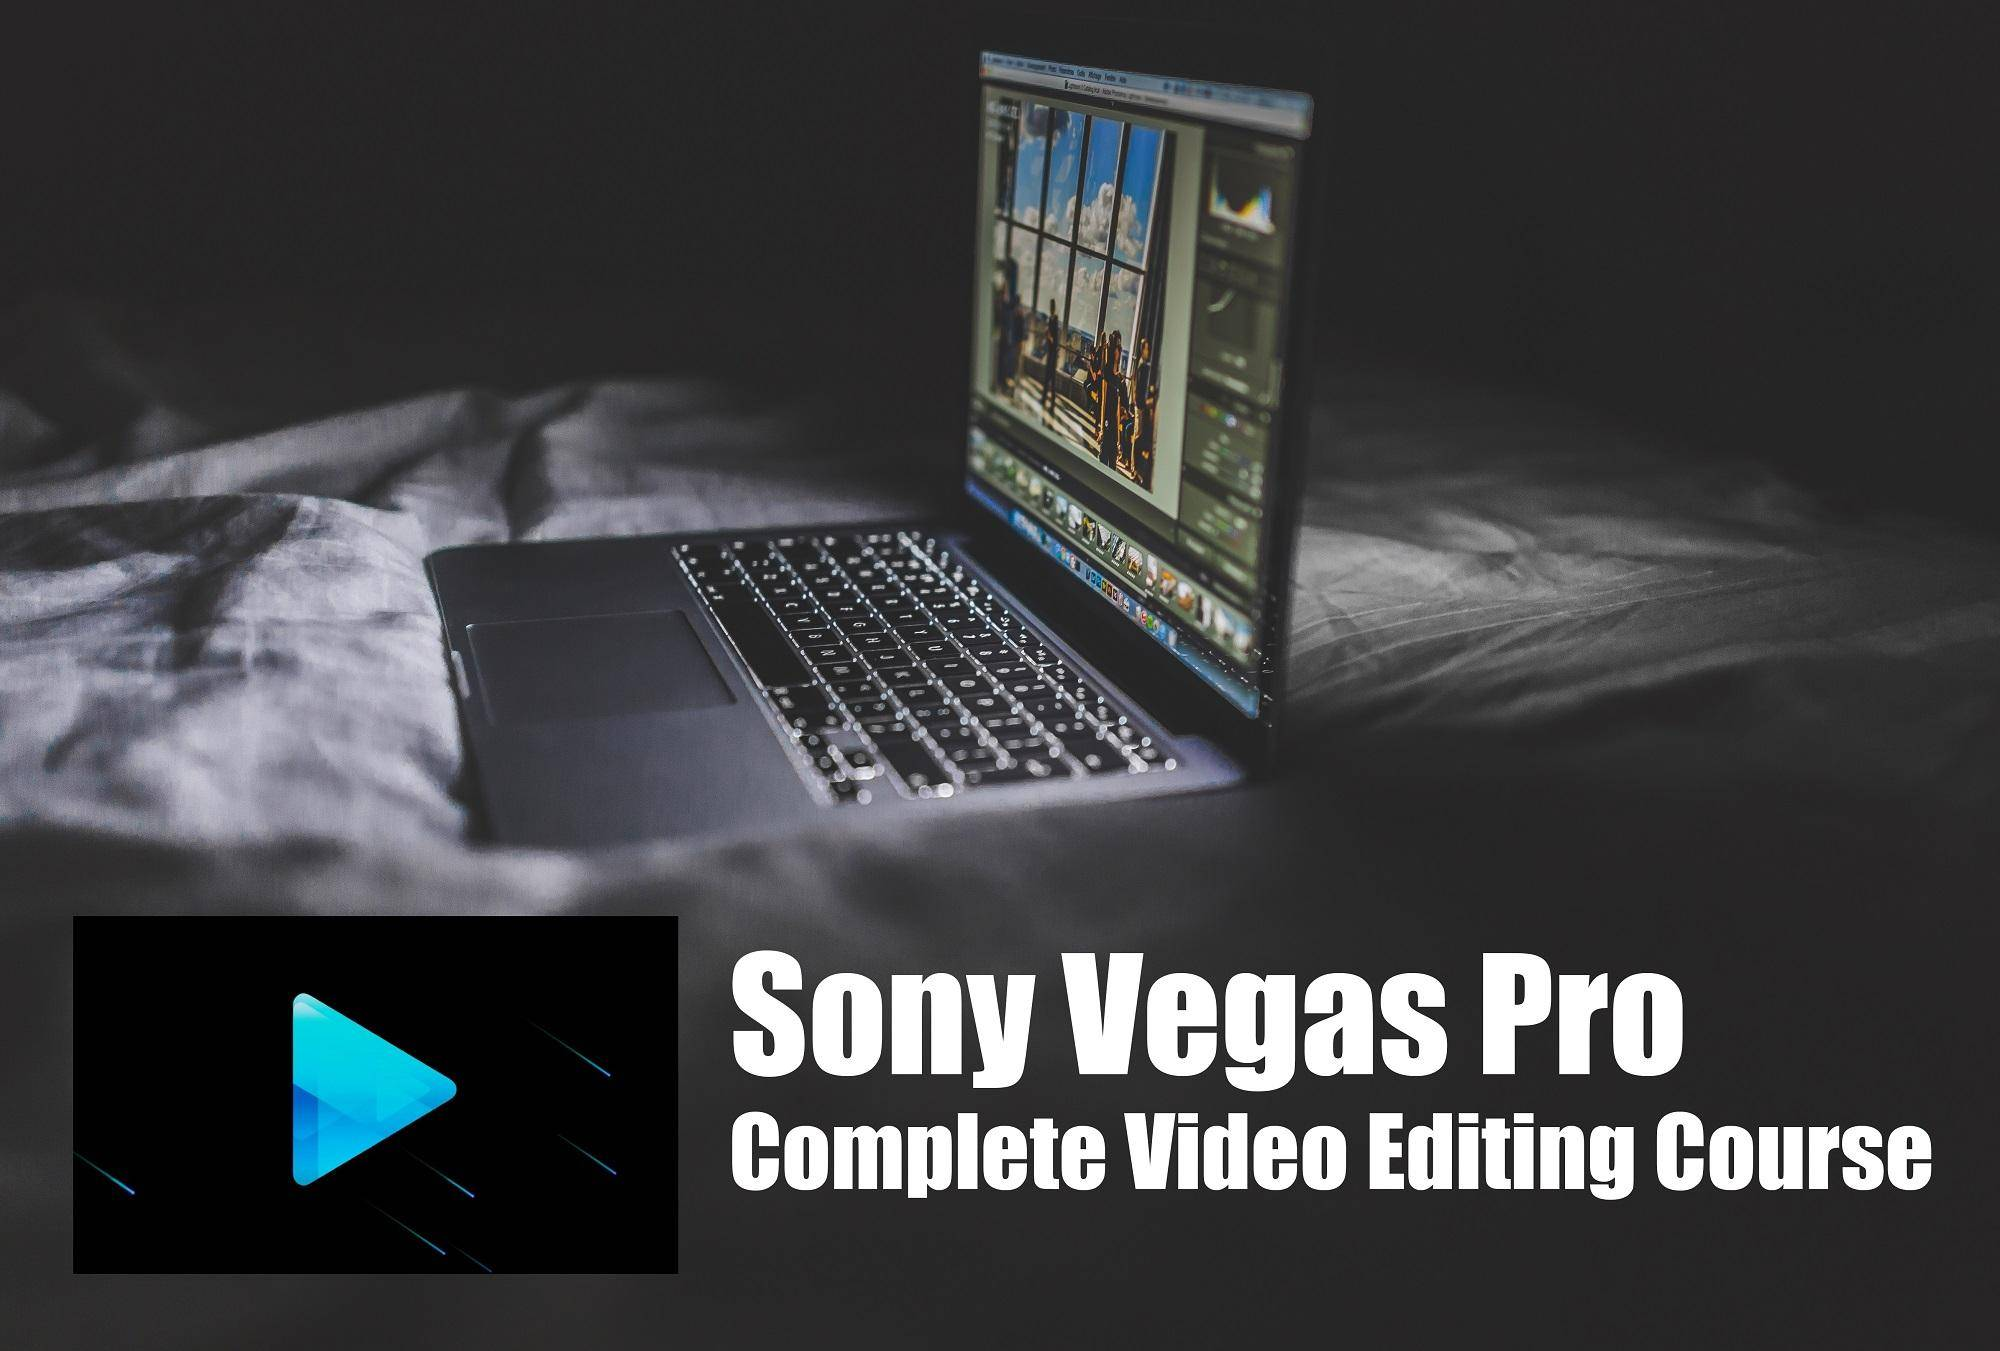 Sony Vega Pro 13 The Complete Video Editing Course With Sony Vegas Pro 13 Level 1